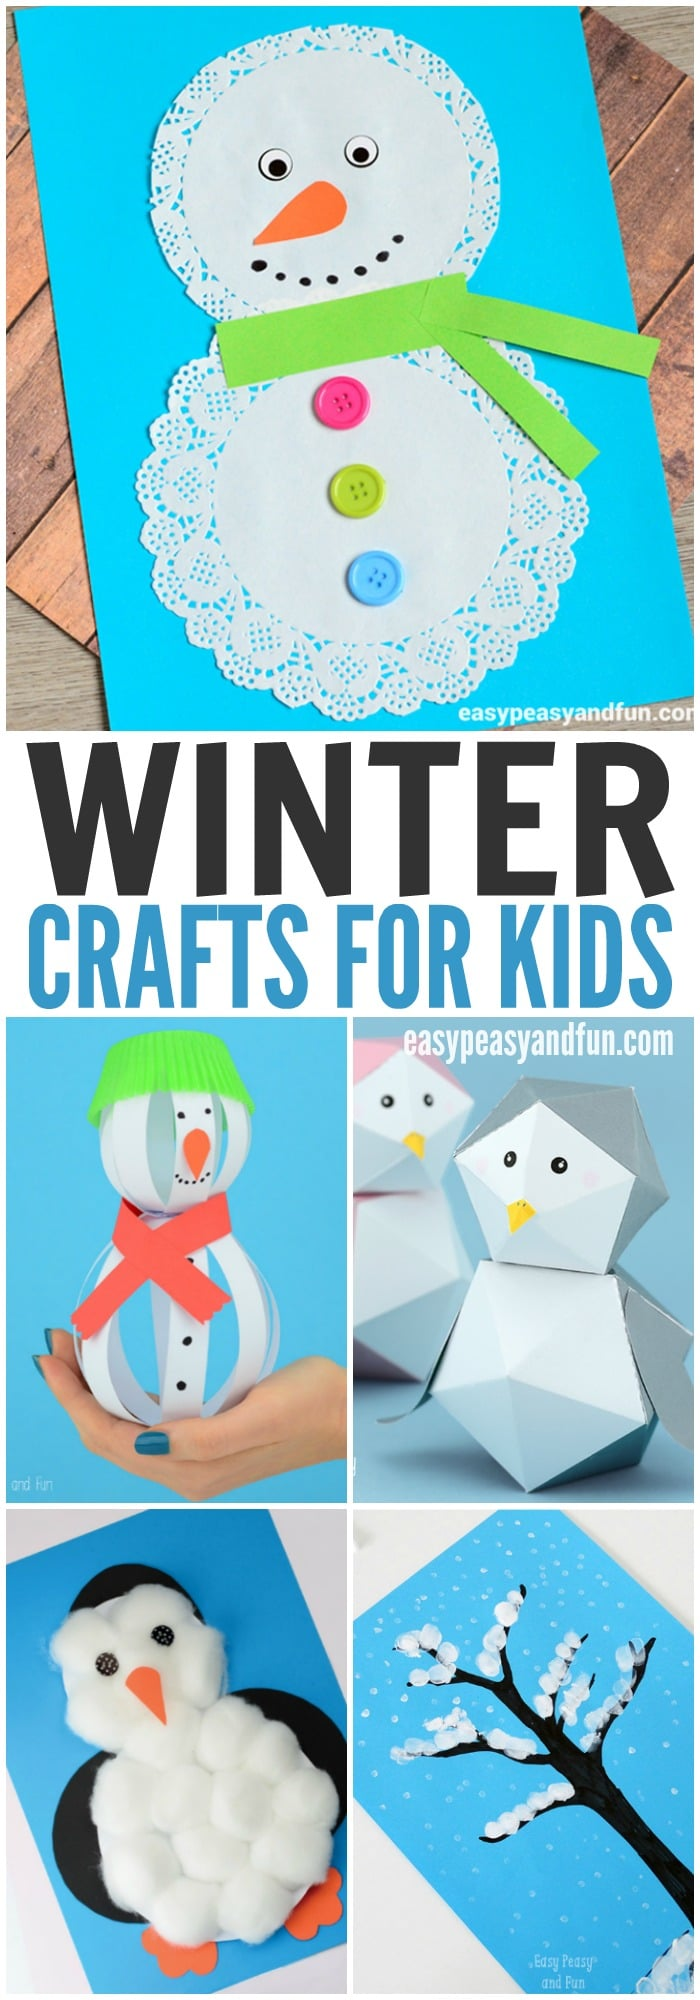 winter craft ideas for children winter crafts for to make and craft ideas 7330